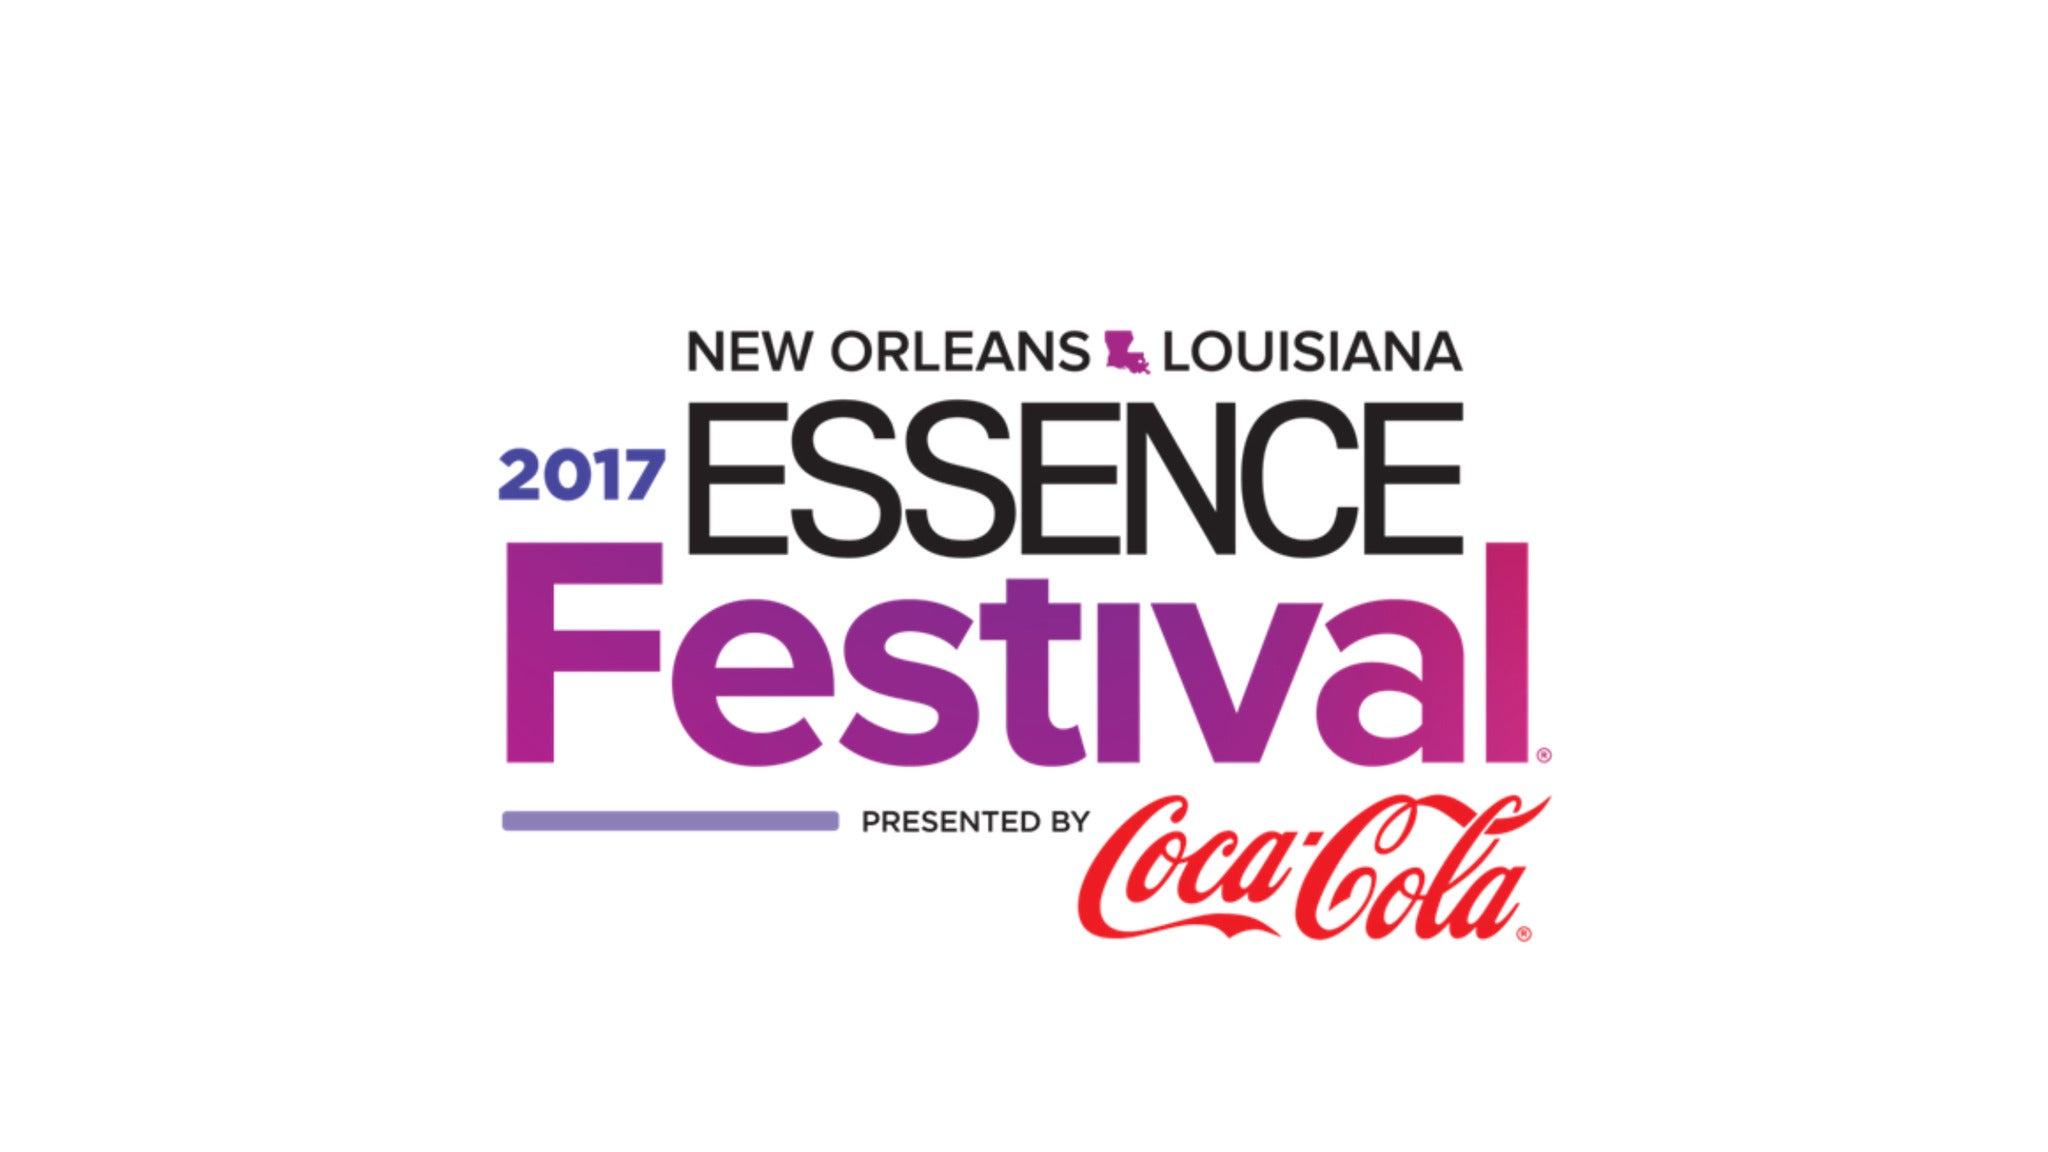 ESSENCE Festival at Mercedes-Benz Superdome